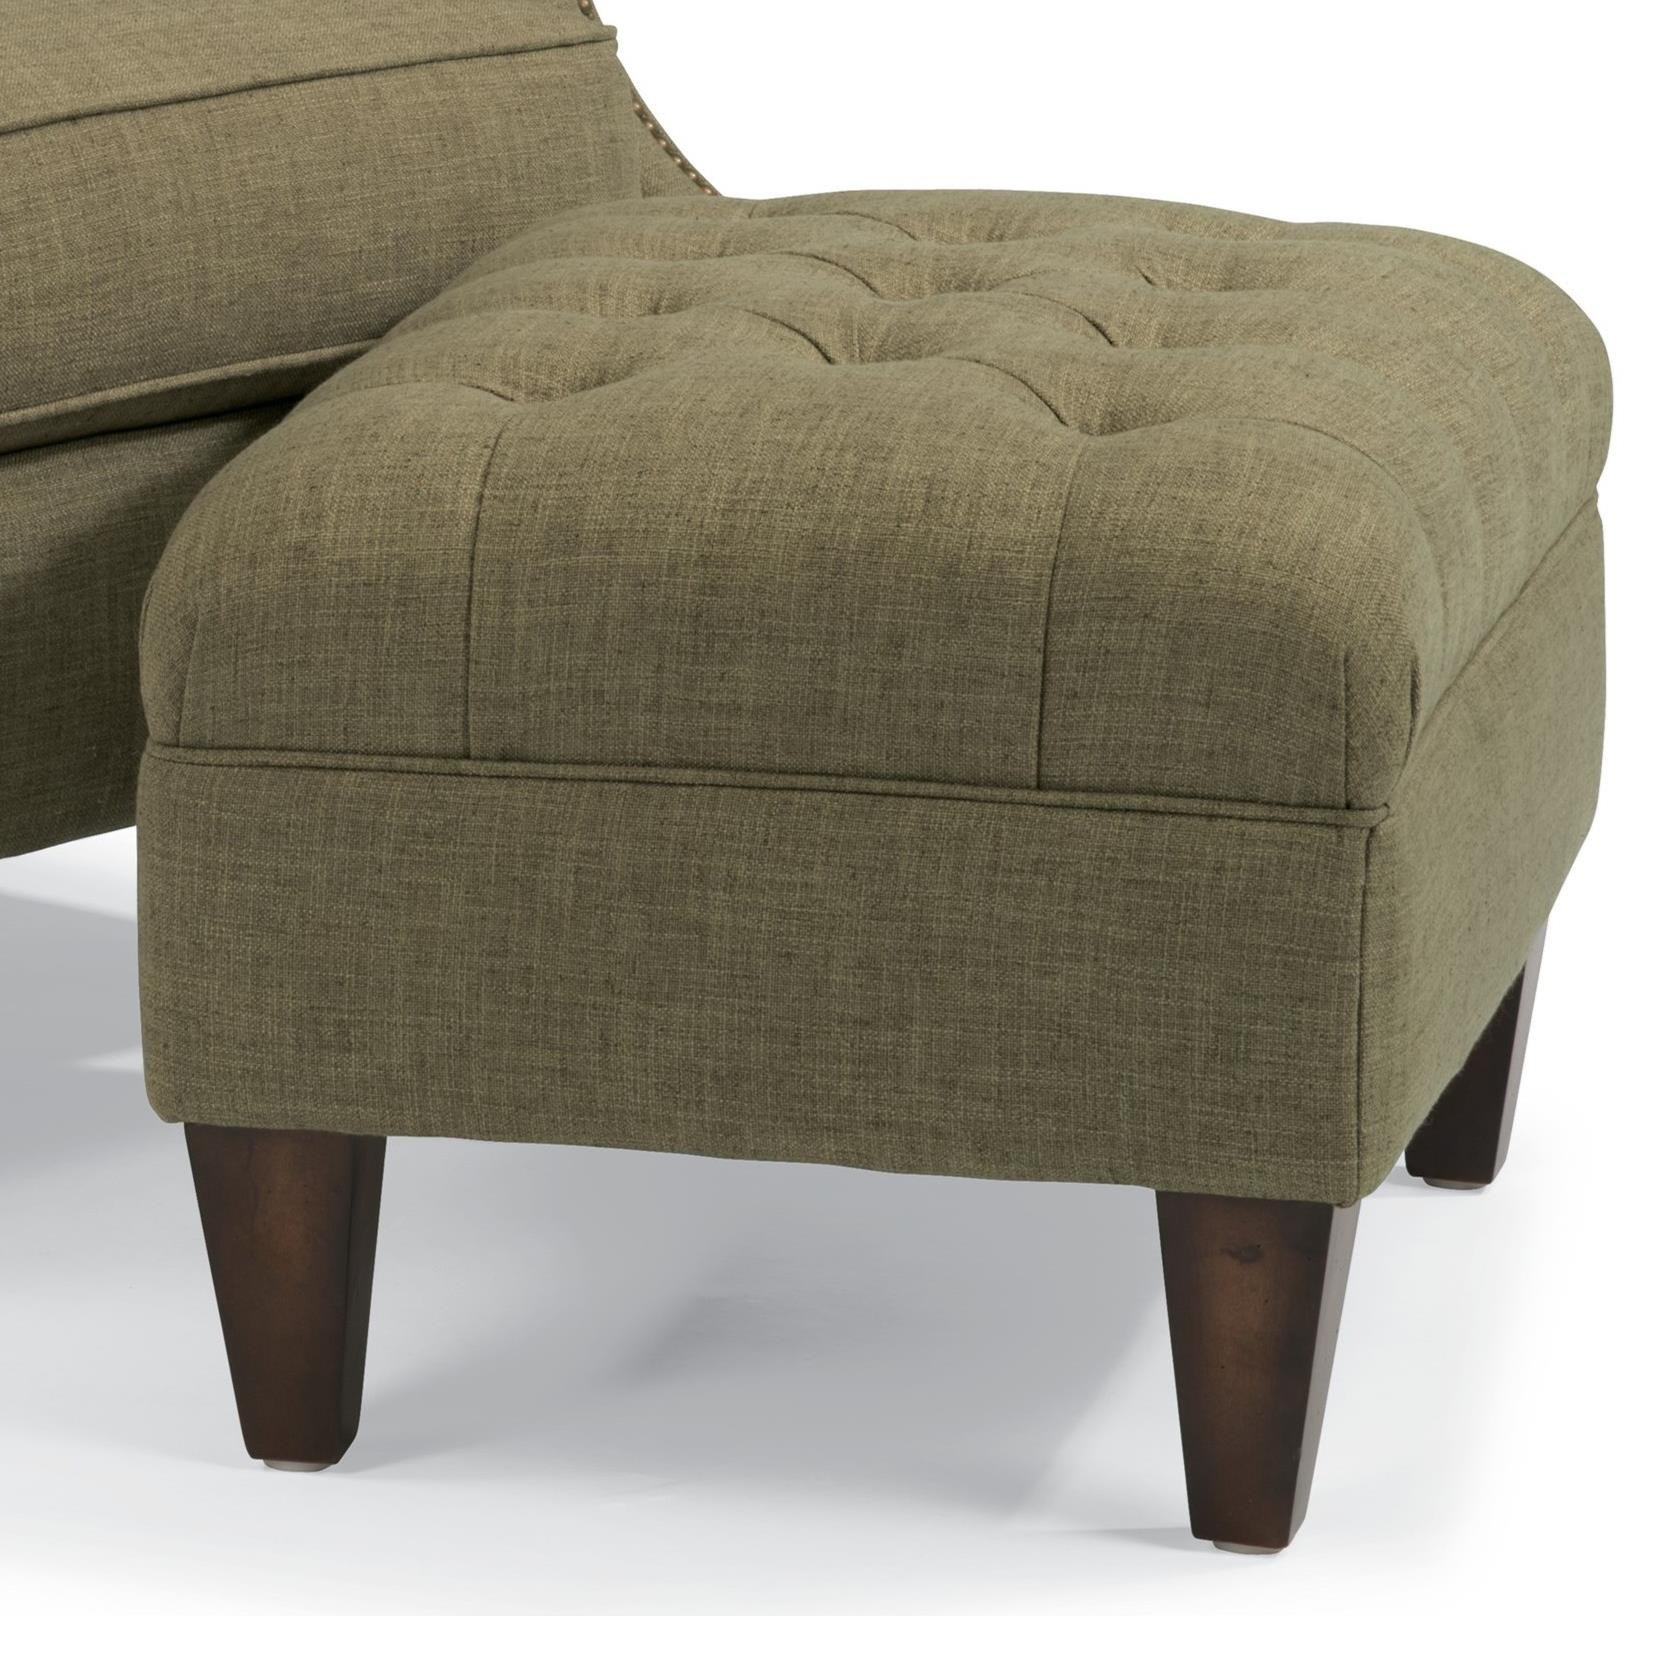 Flexsteel Accents Azalea Ottoman - Item Number: 0610-08